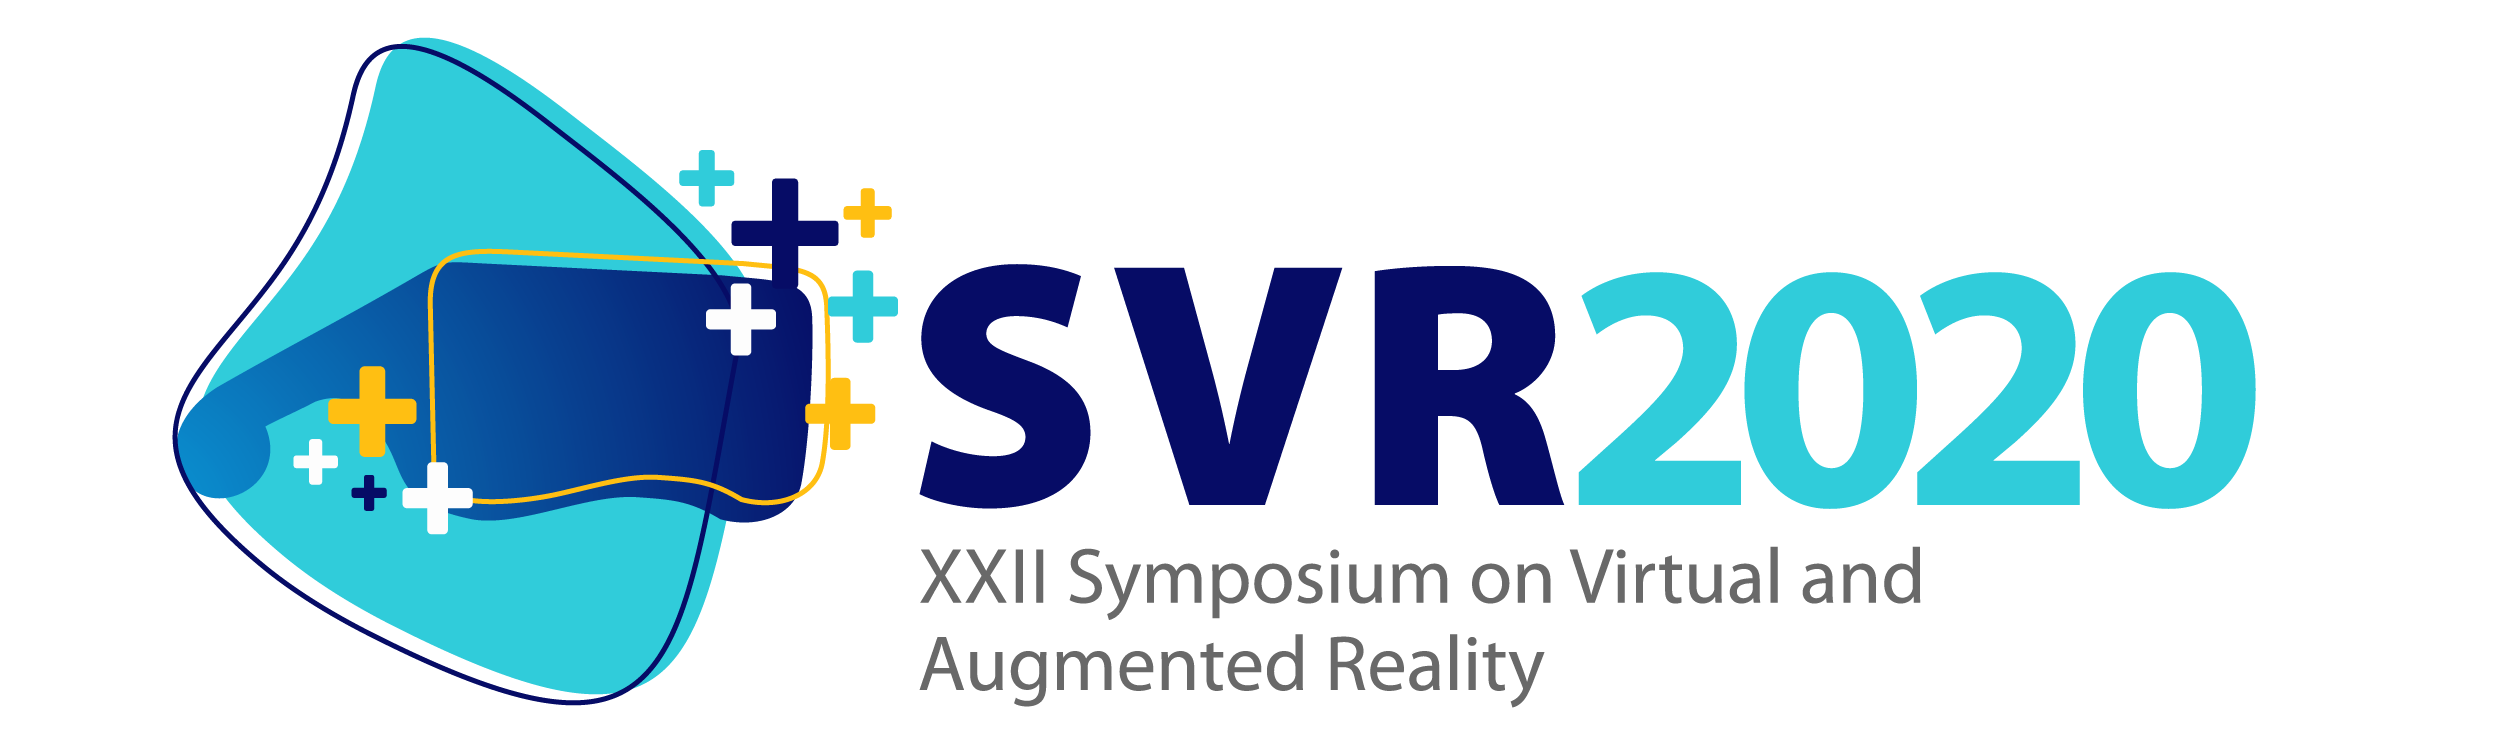 SVR 2020 – Symposium on Virtual and Augmented Reality